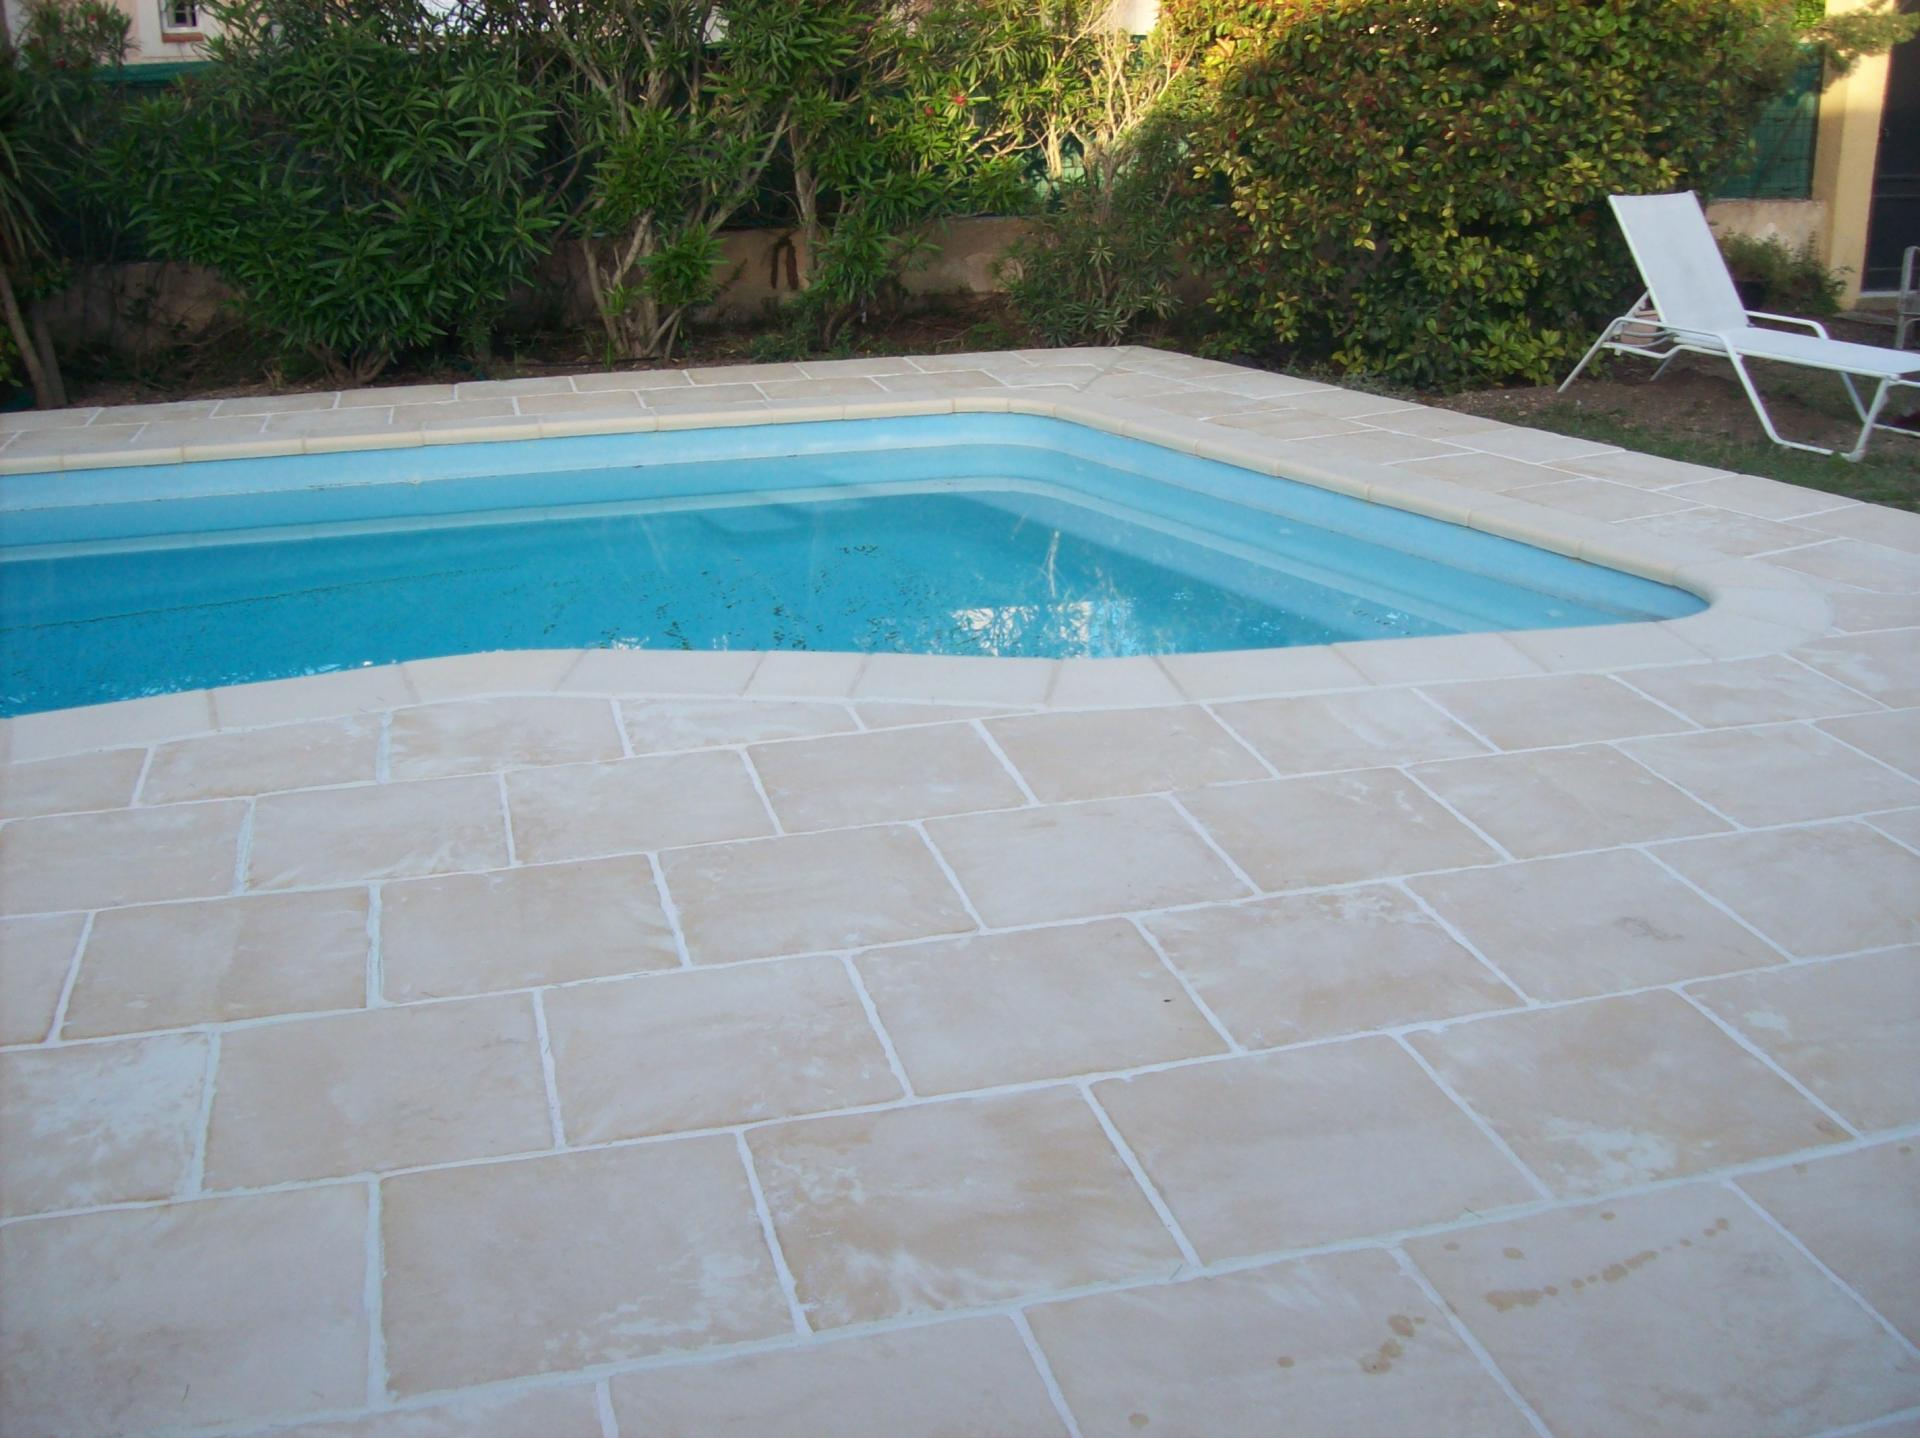 Ext rieur dallage piscine marseille - Piscine de plan de cuques ...